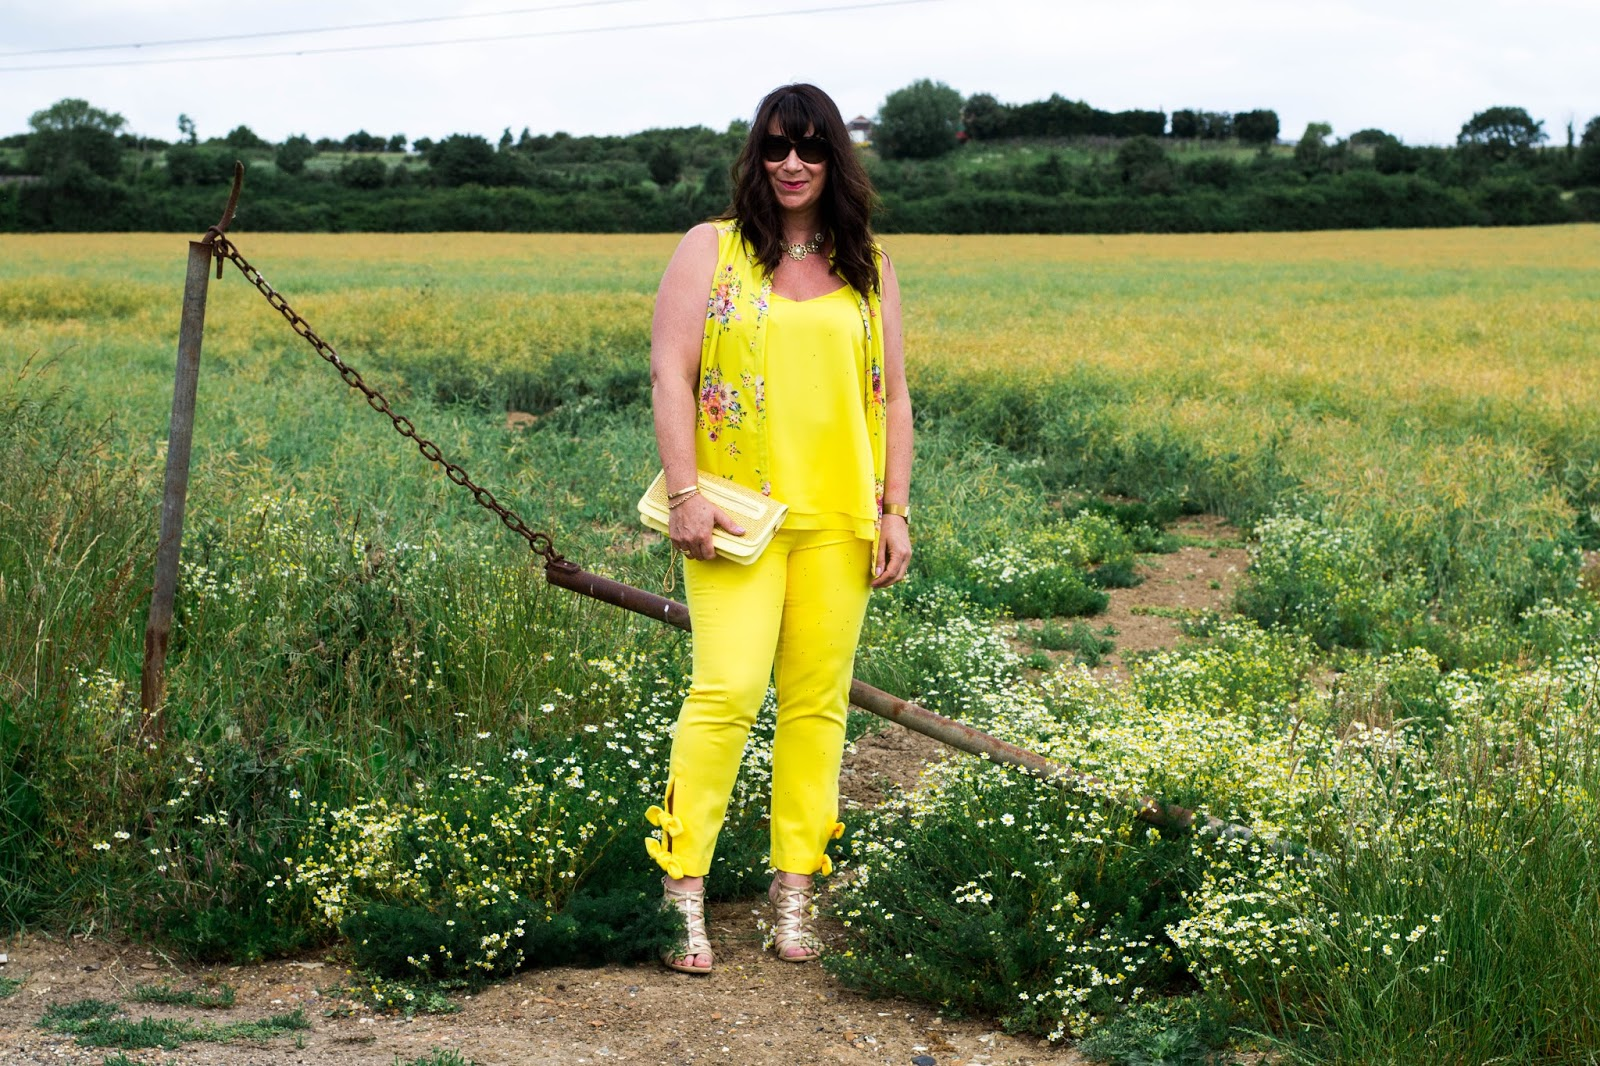 Monochrome can mean different shades of one colour as blogger Jacqui Berry shows with her zingy yellow outfit and accessories